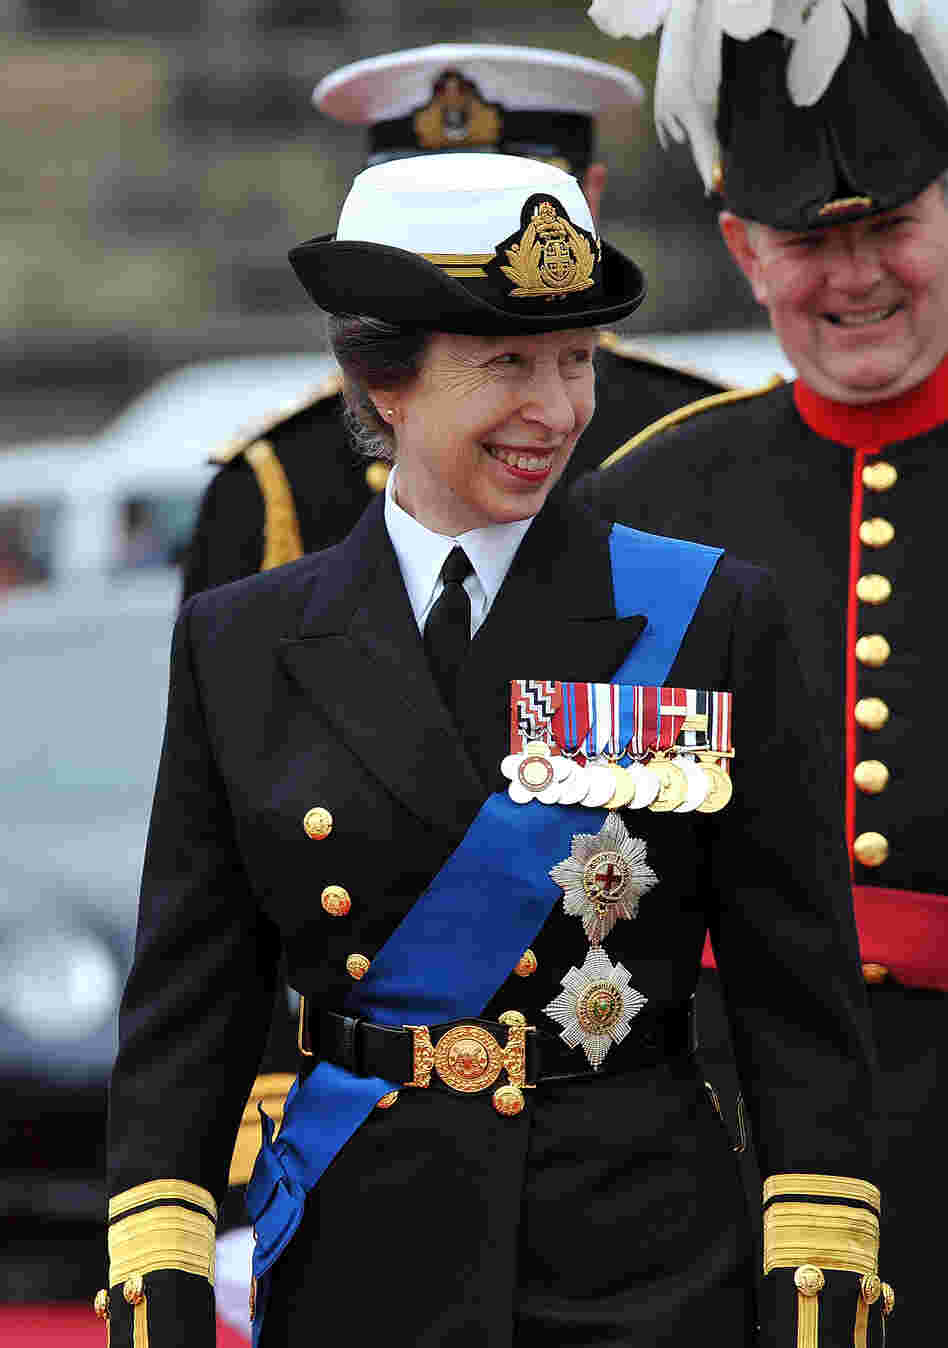 Princess Anne, the queen's daughter, joined the cruise. British monarchs used the Thames as their main highway for centuries, and naval power built the island nation's once-great empire.